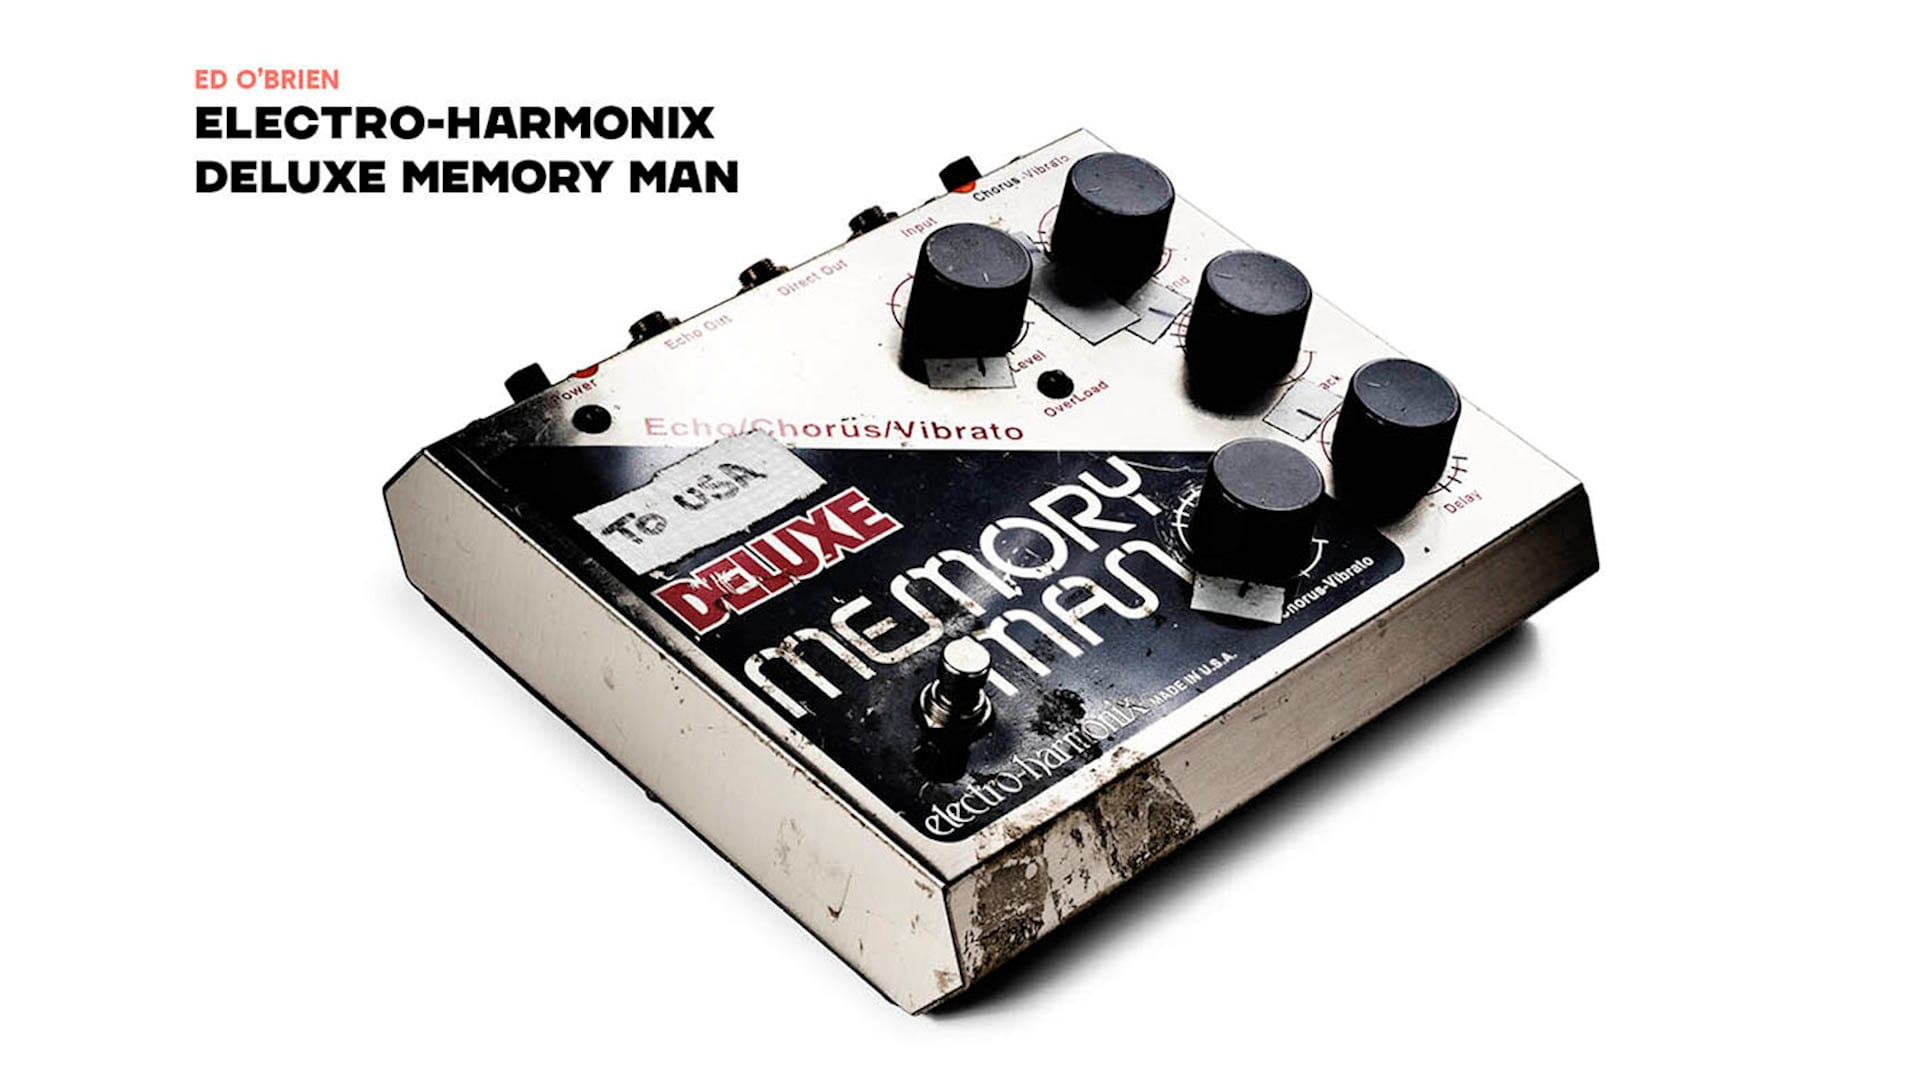 Deluxe Memory Man Live Interview with Ed O'Brien & Jim Jarmusch